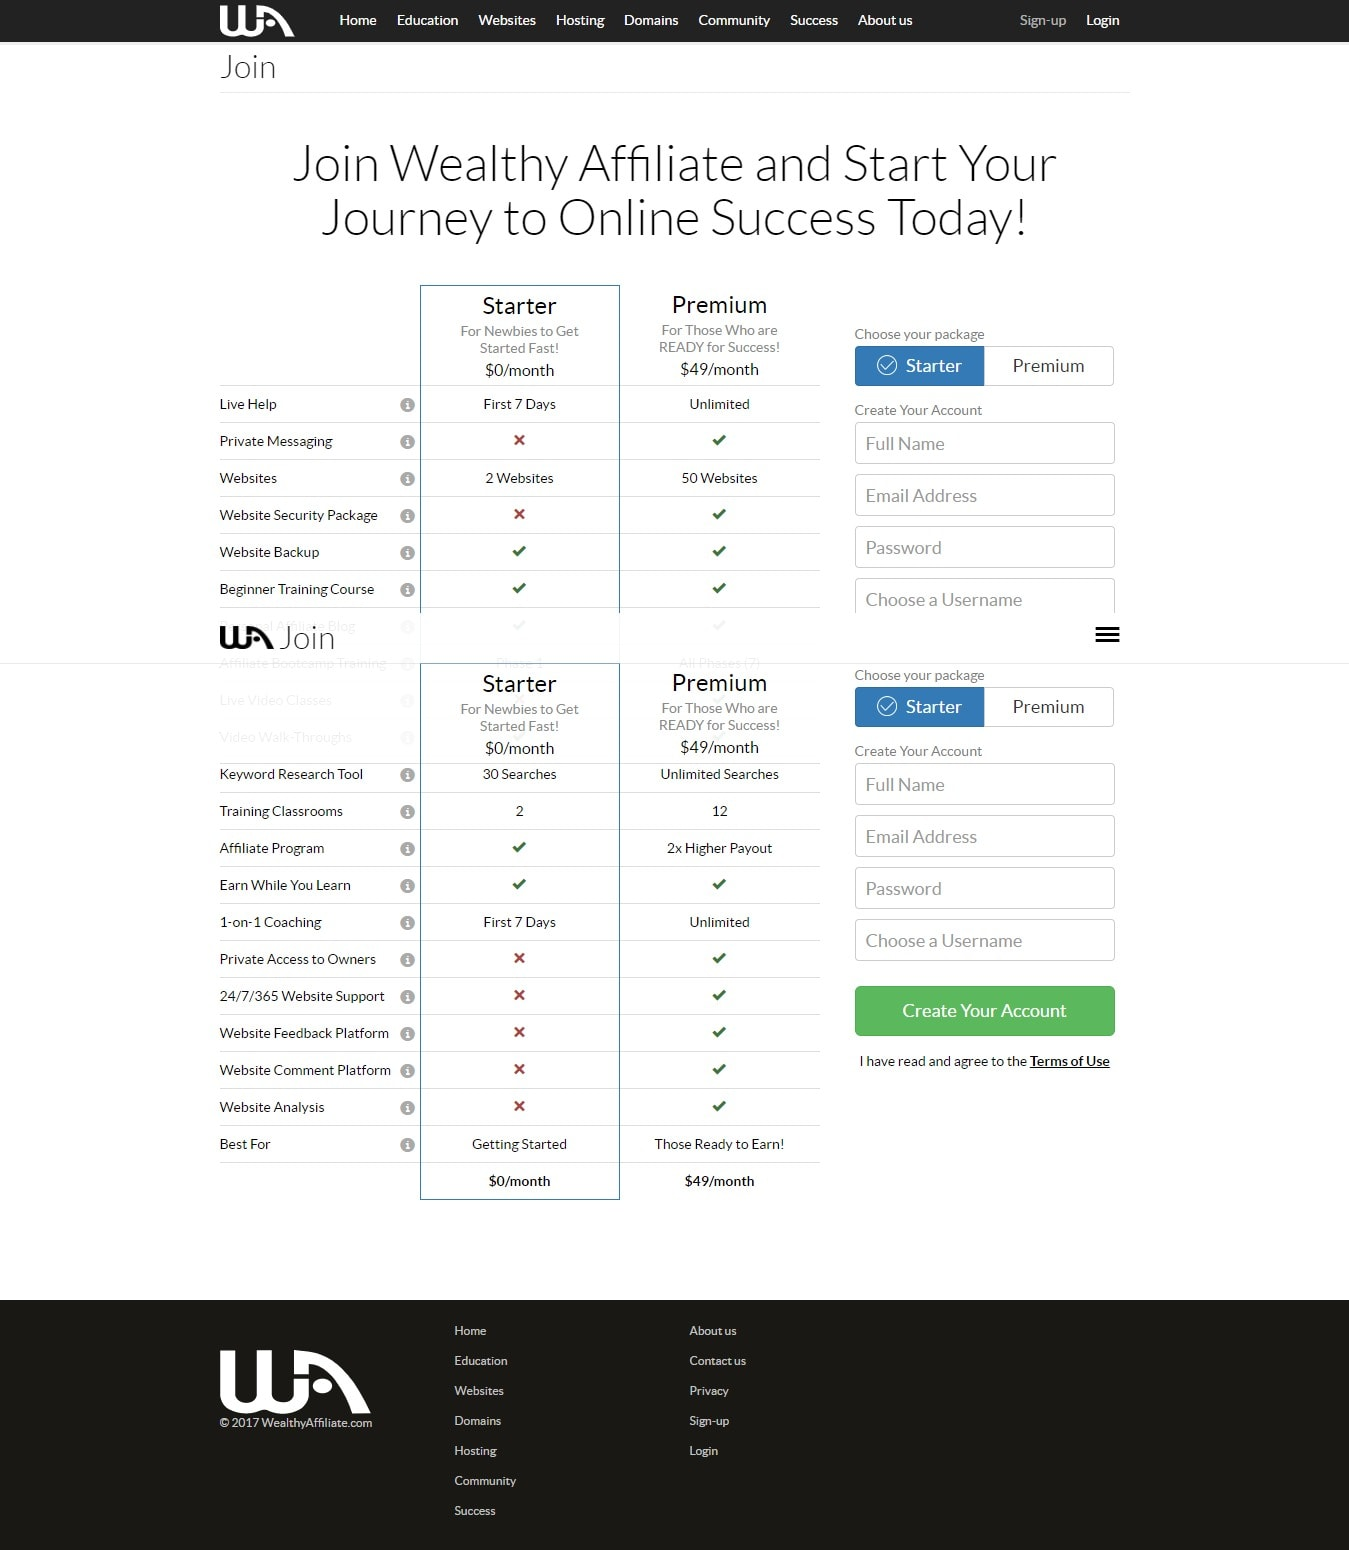 Join Wealthy Affiliate and start your journey